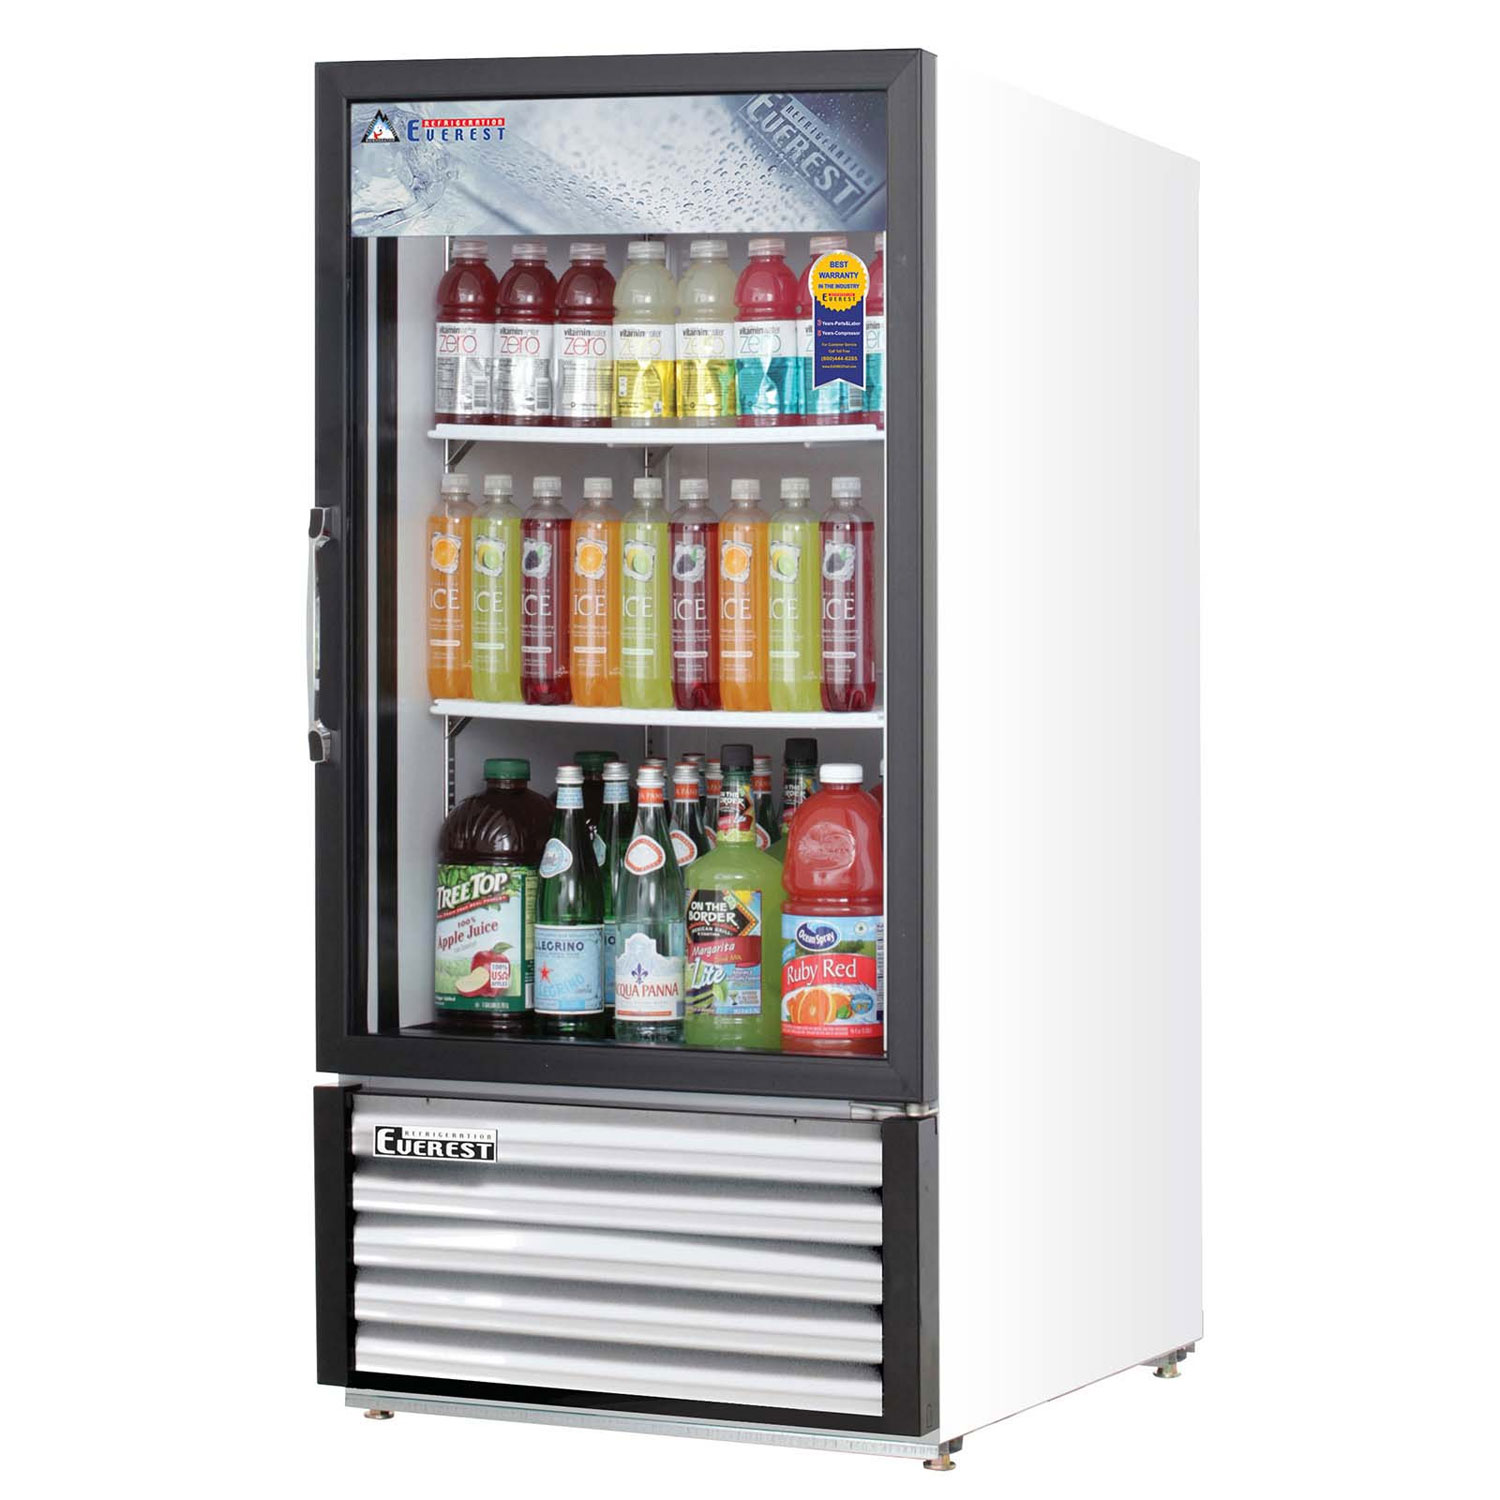 Everest Emgr8 838 Cu Ft Glass Door Merchandiser Refrigerator